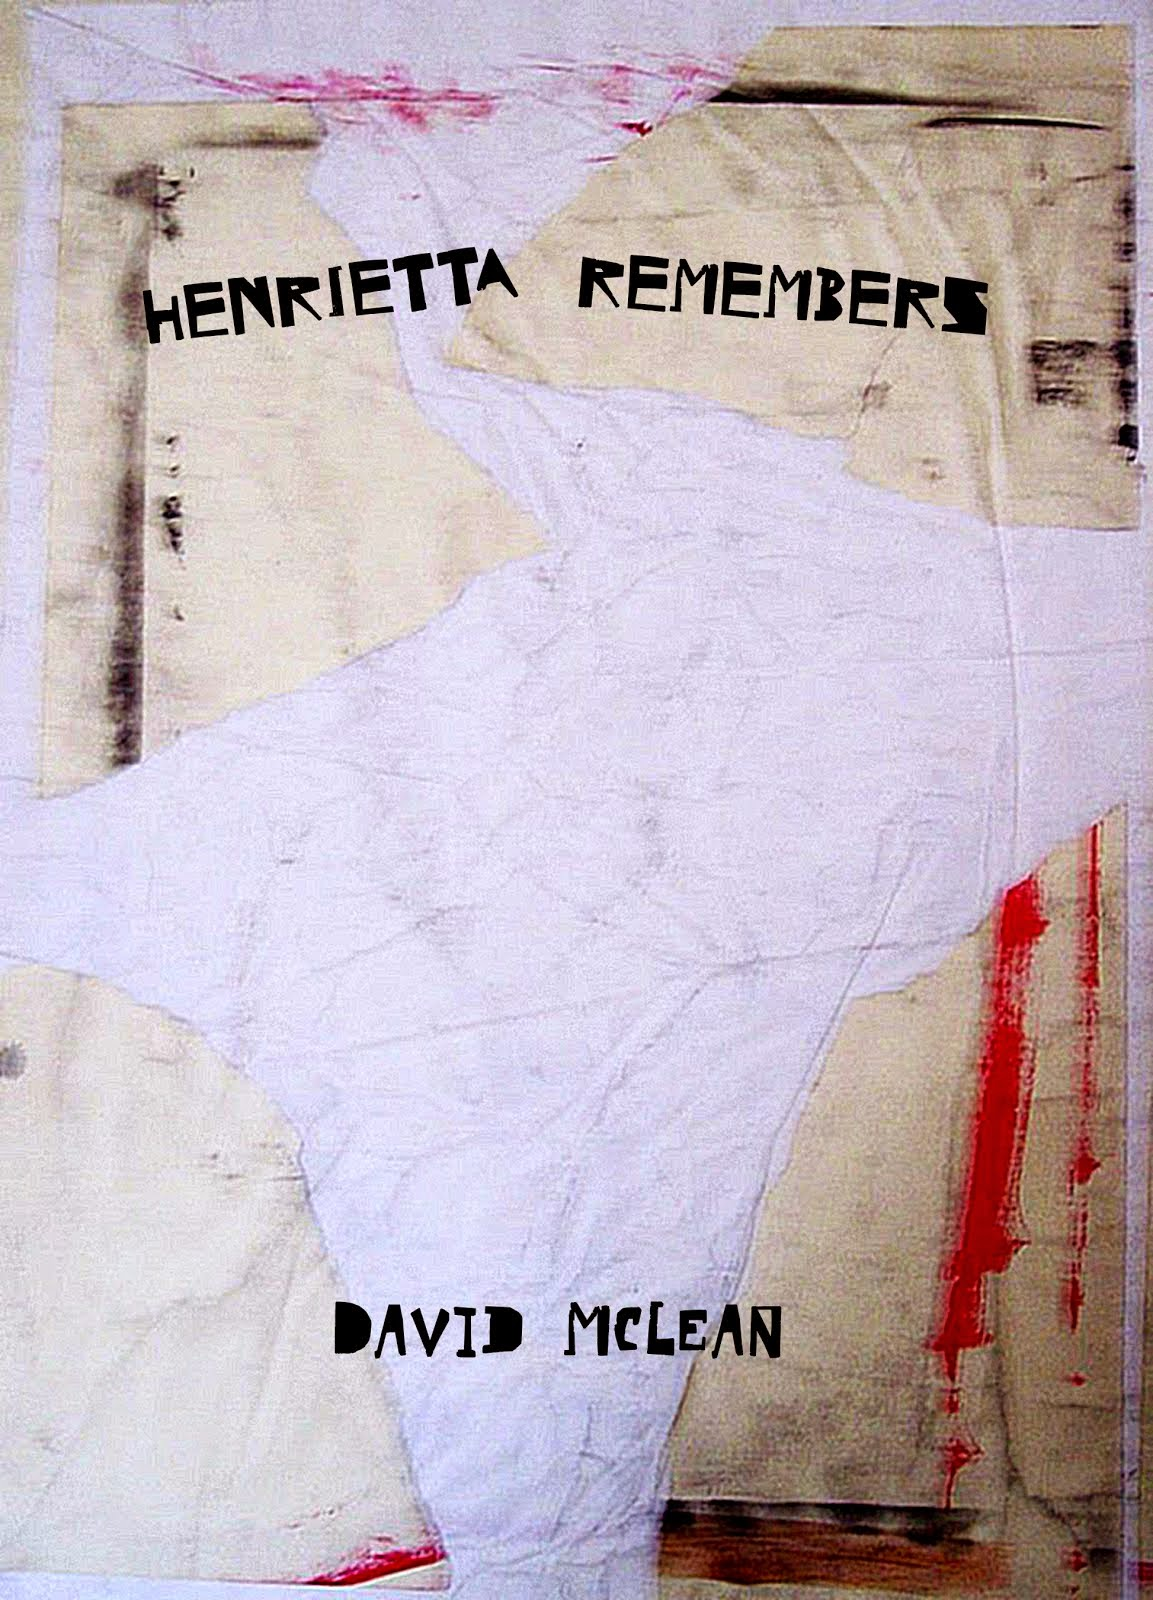 Henrietta remembers, 1st novel